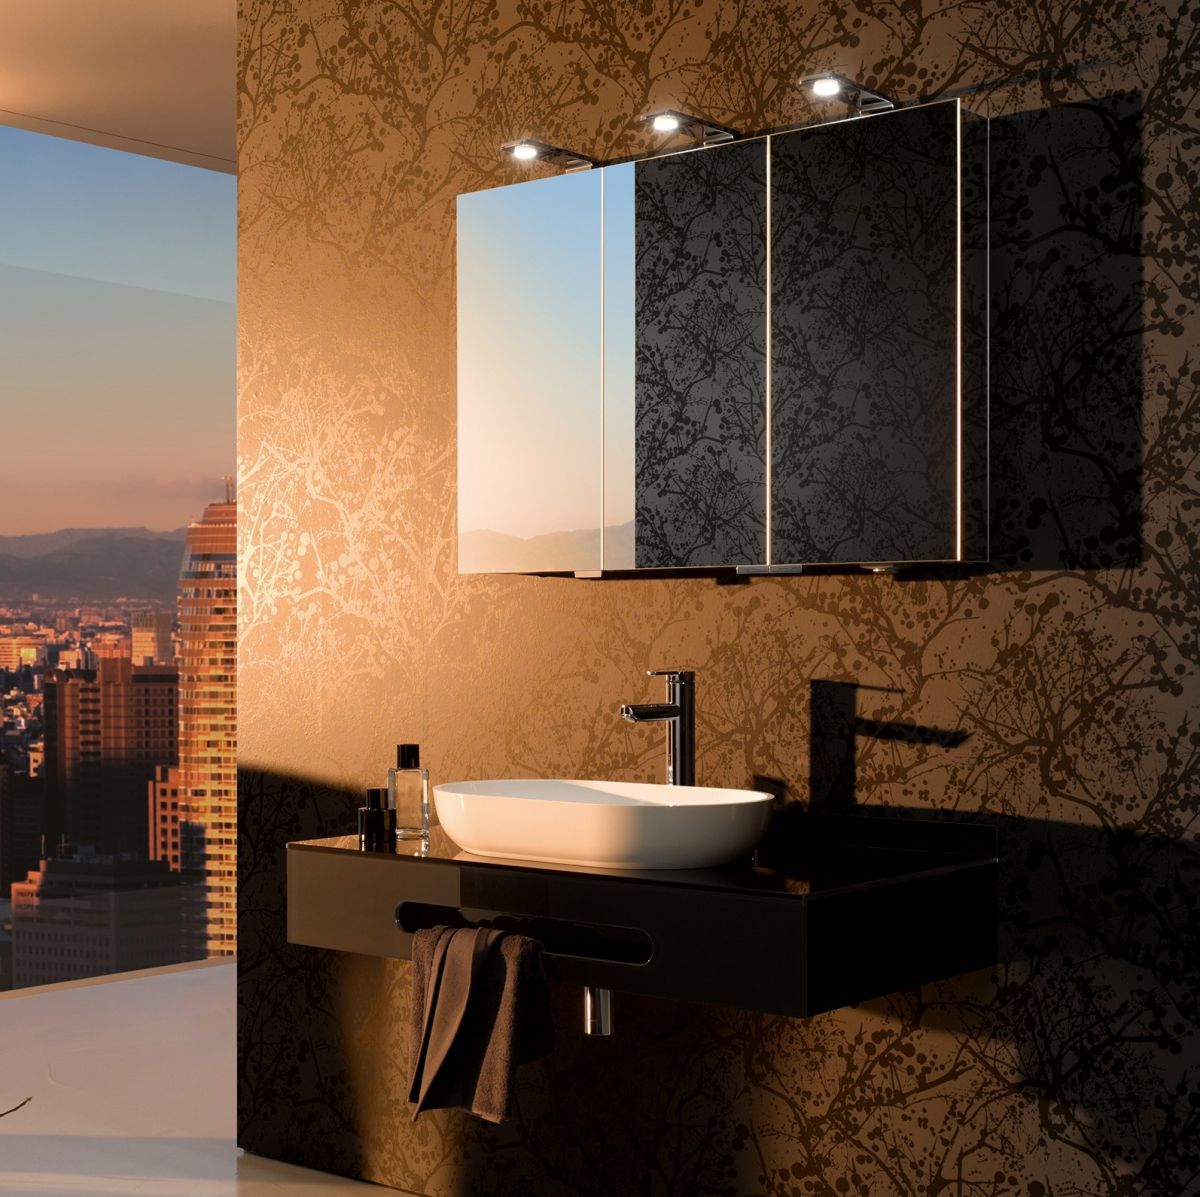 Bathroom Cabinets Keuco keuco royal universe illuminated mirror cabinet #keuco #bathroom